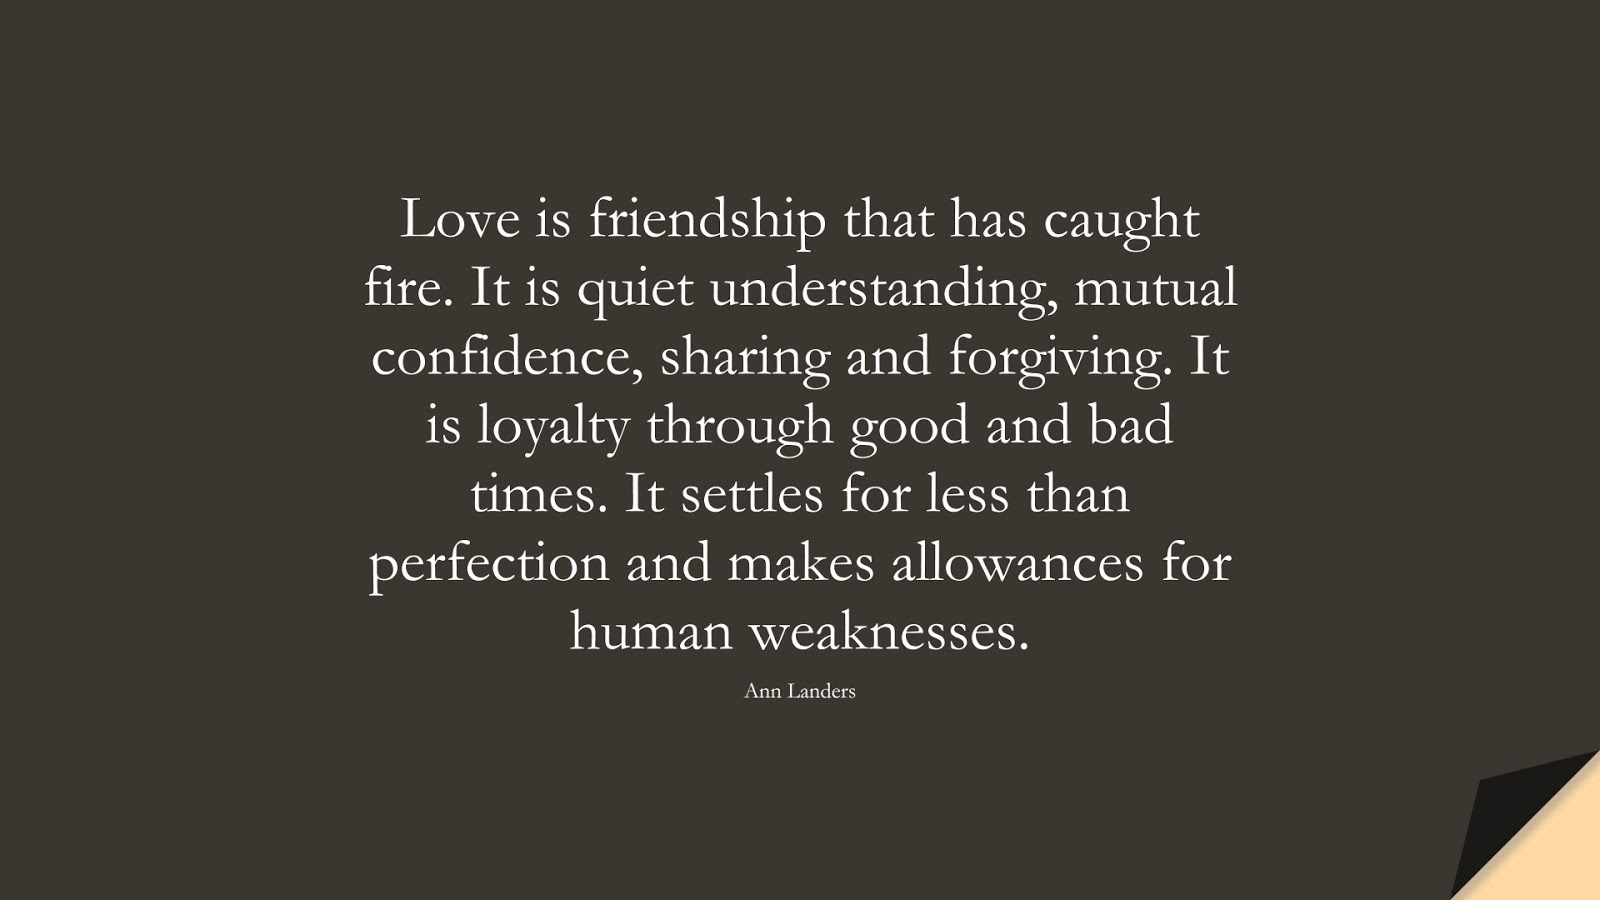 Love is friendship that has caught fire. It is quiet understanding, mutual confidence, sharing and forgiving. It is loyalty through good and bad times. It settles for less than perfection and makes allowances for human weaknesses. (Ann Landers);  #LoveQuotes